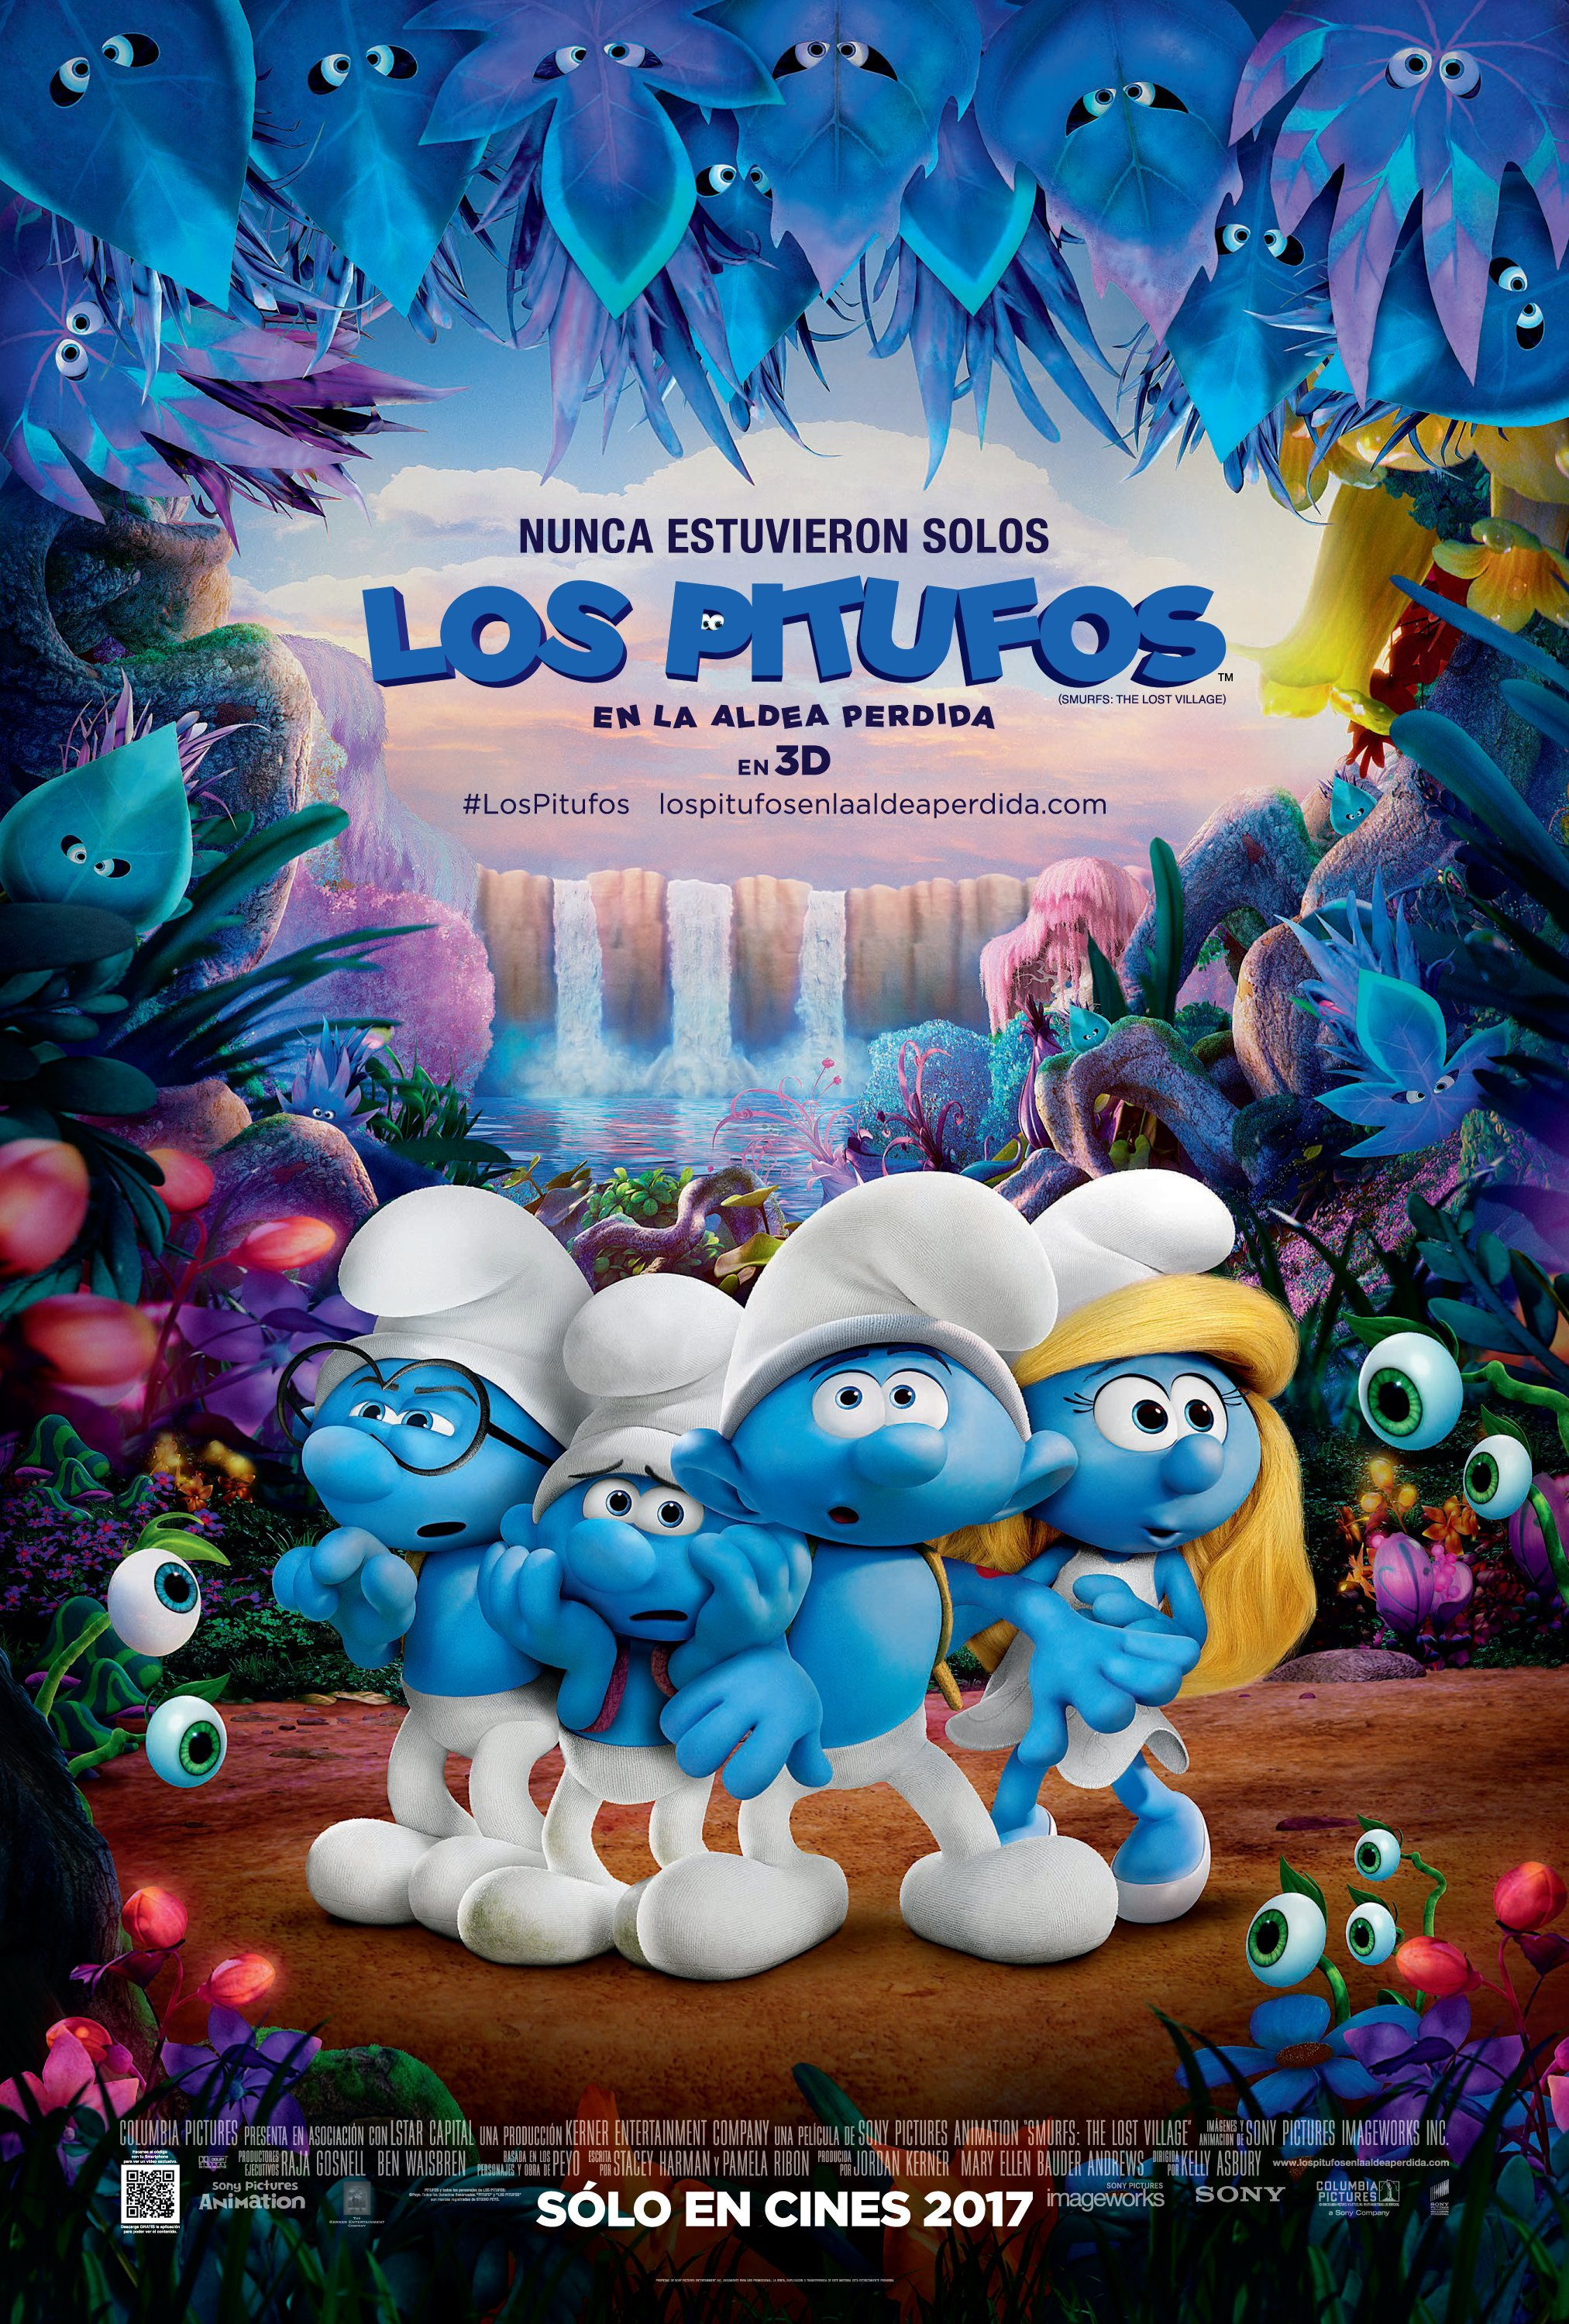 http://www.andesfilms.com.pe/los-pitufos-3103/